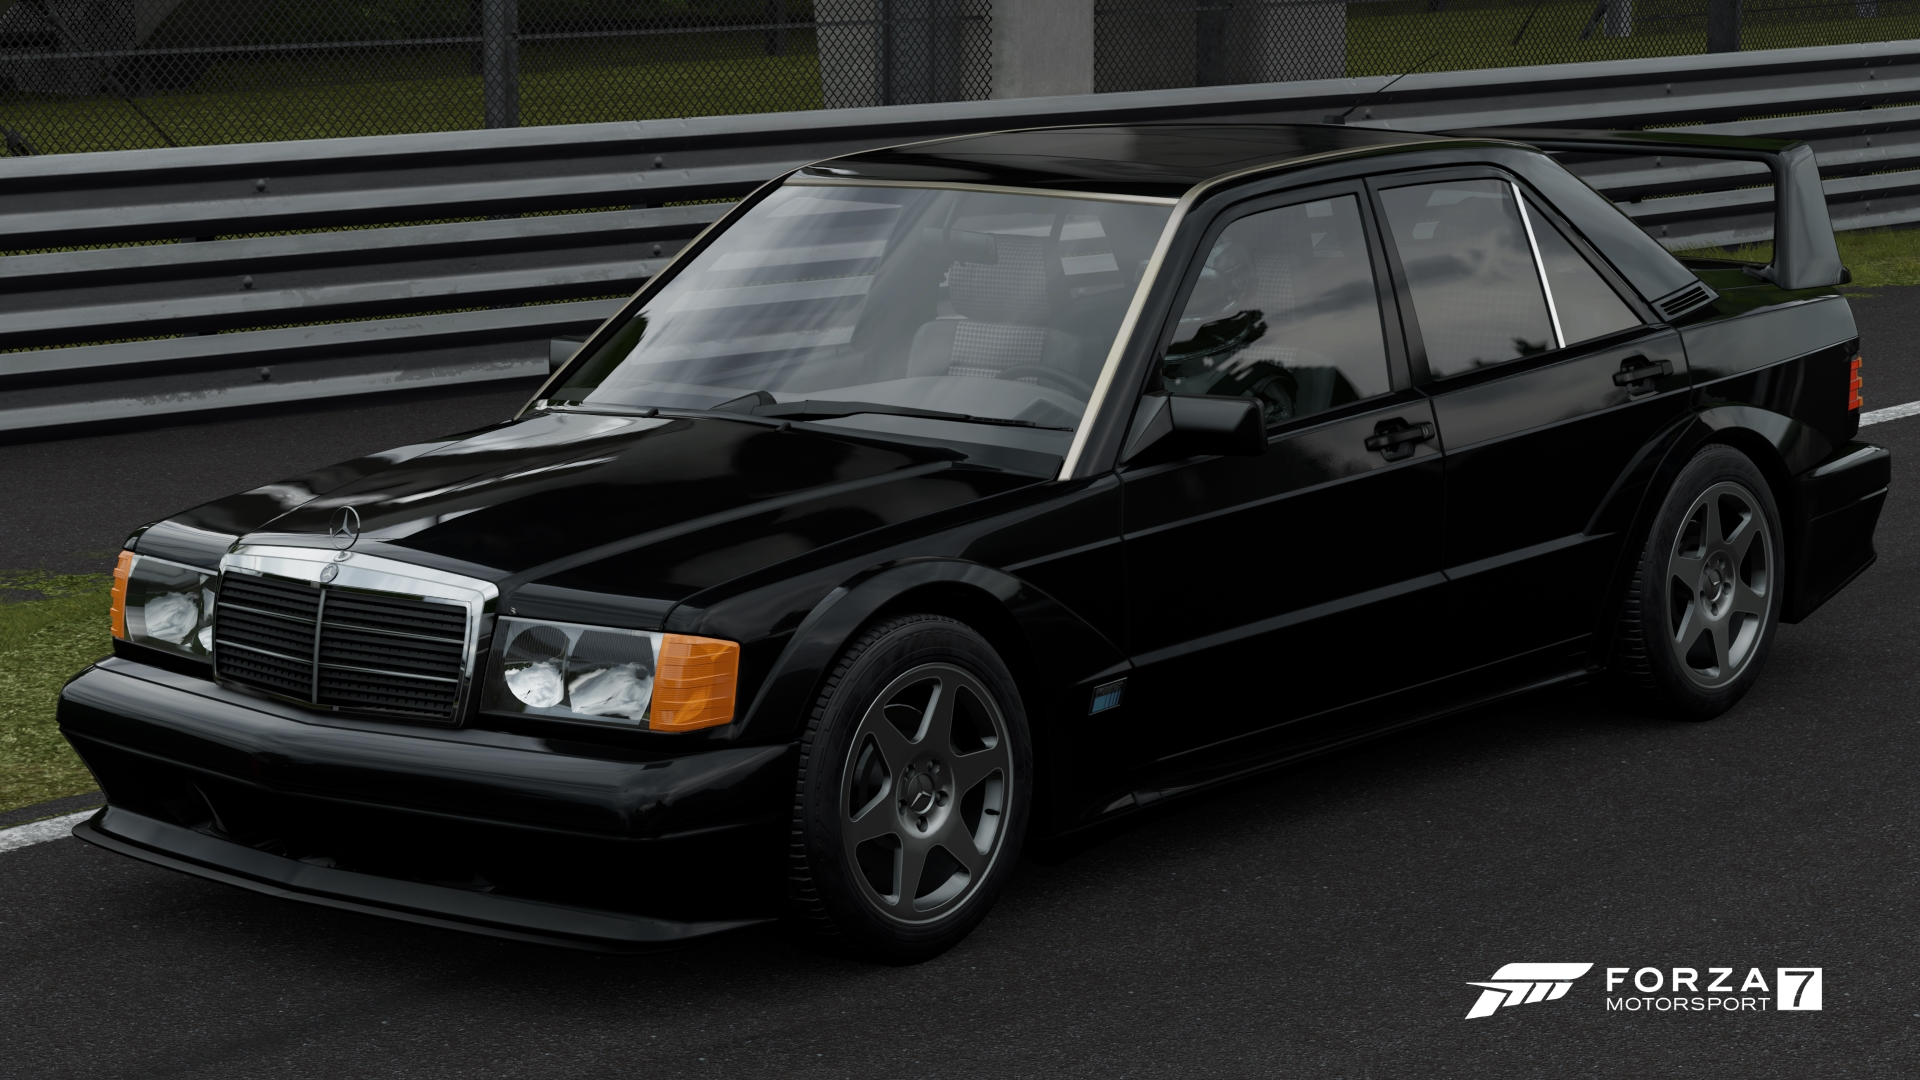 Mercedes-Benz 190E 2 5-16 Evolution II | Forza Motorsport Wiki